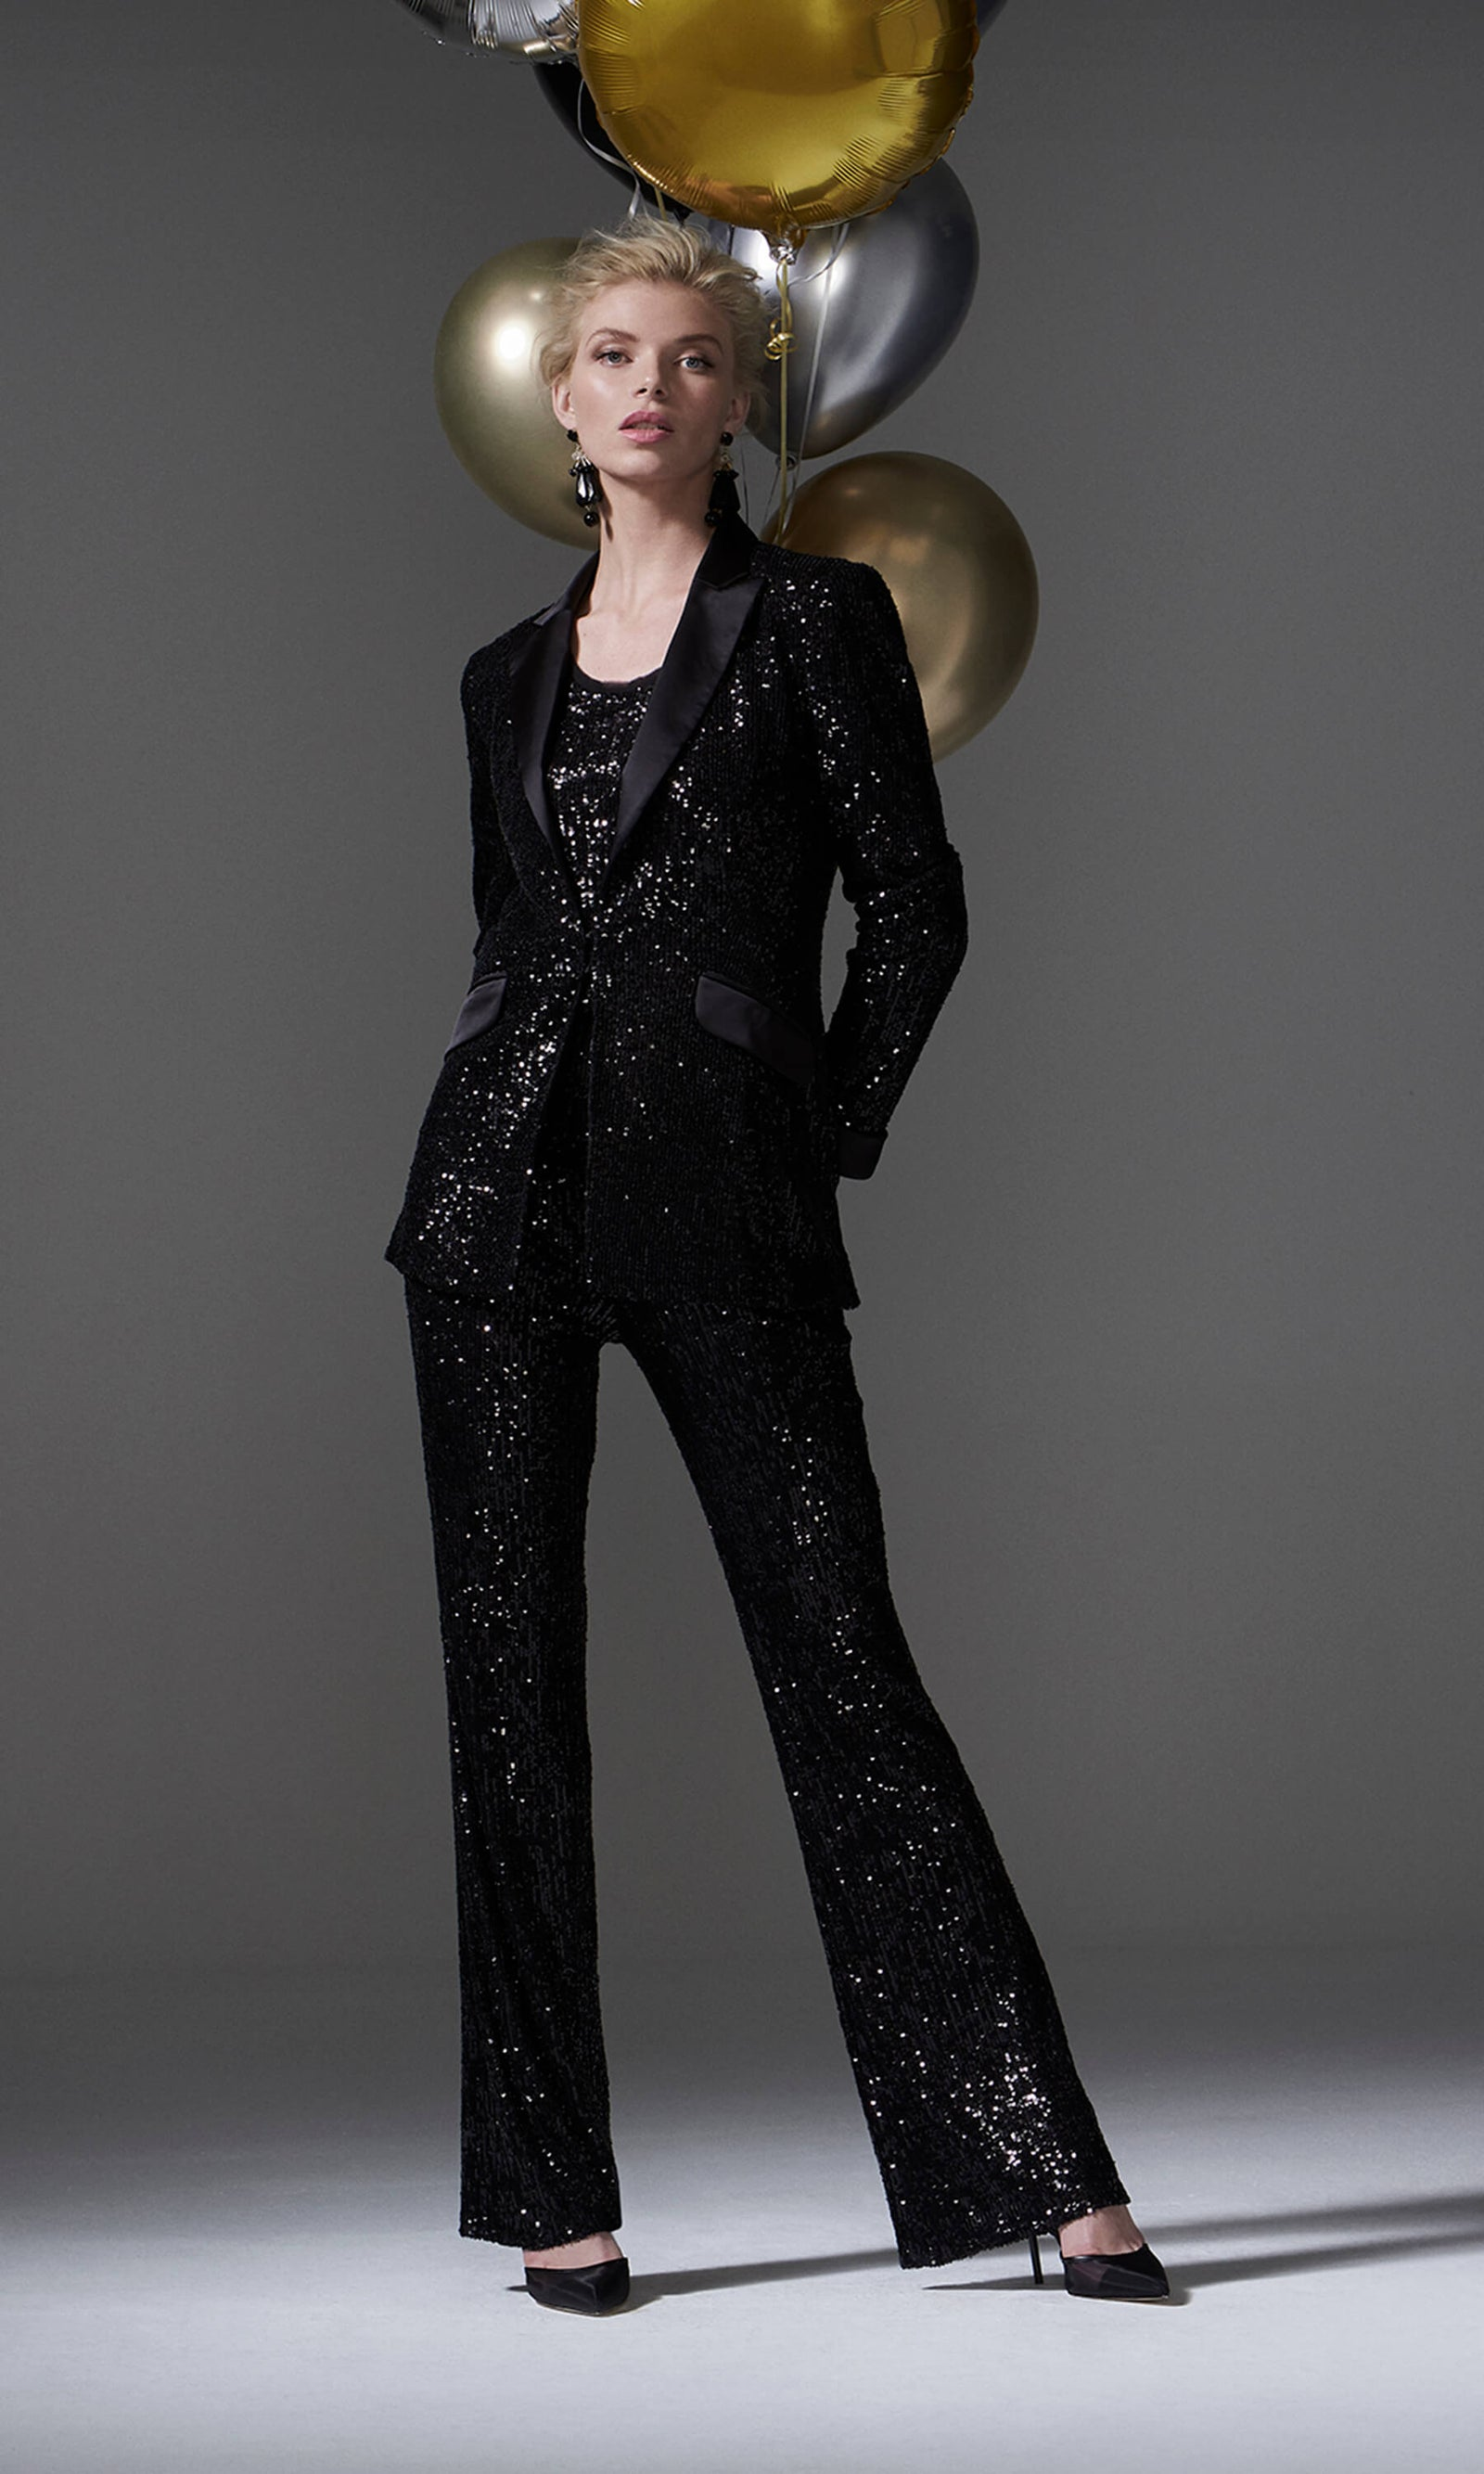 96094 Black Carla Ruiz Sequin Tuxedo Evening Trouser Suit